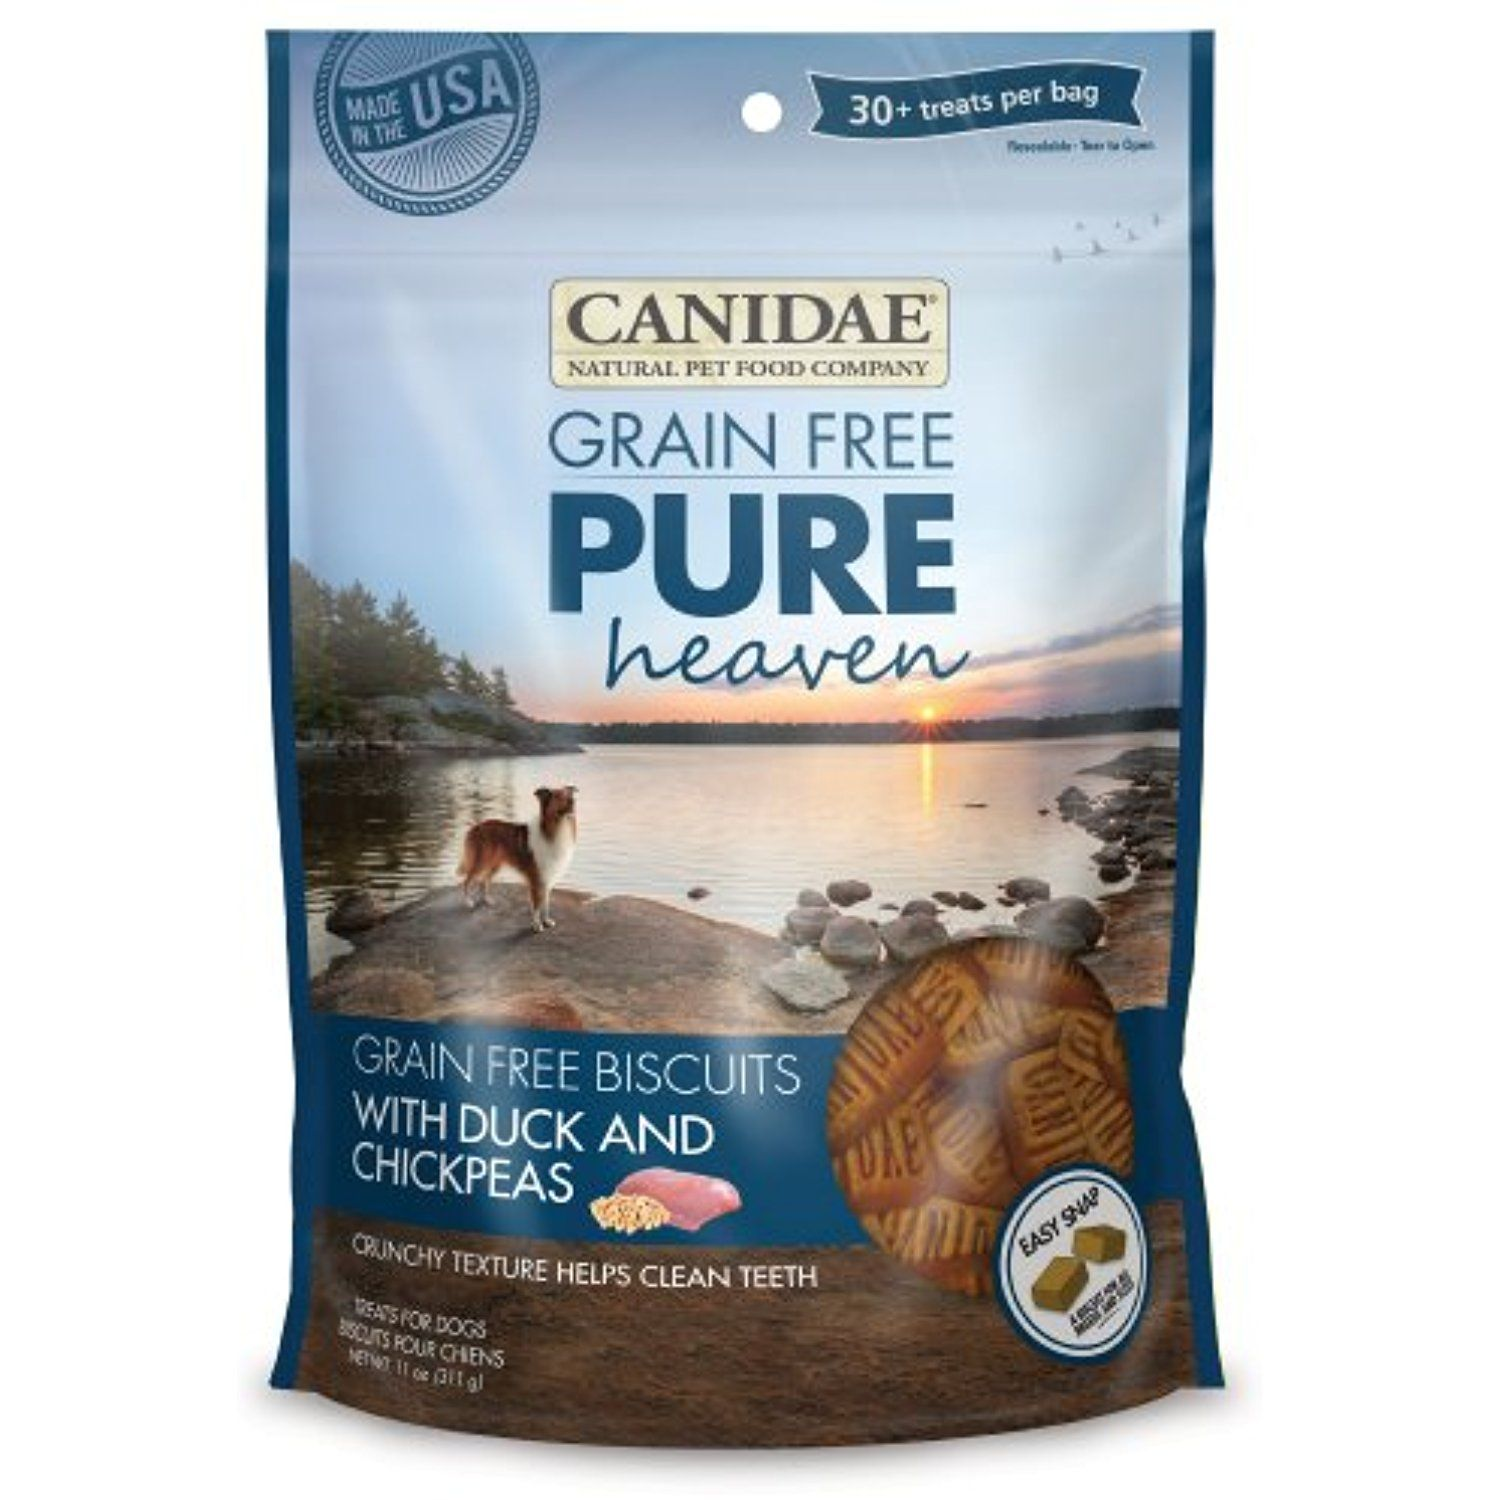 Canidae Grain Free Pure Heaven Dog Biscuits With Duck Chickpeas